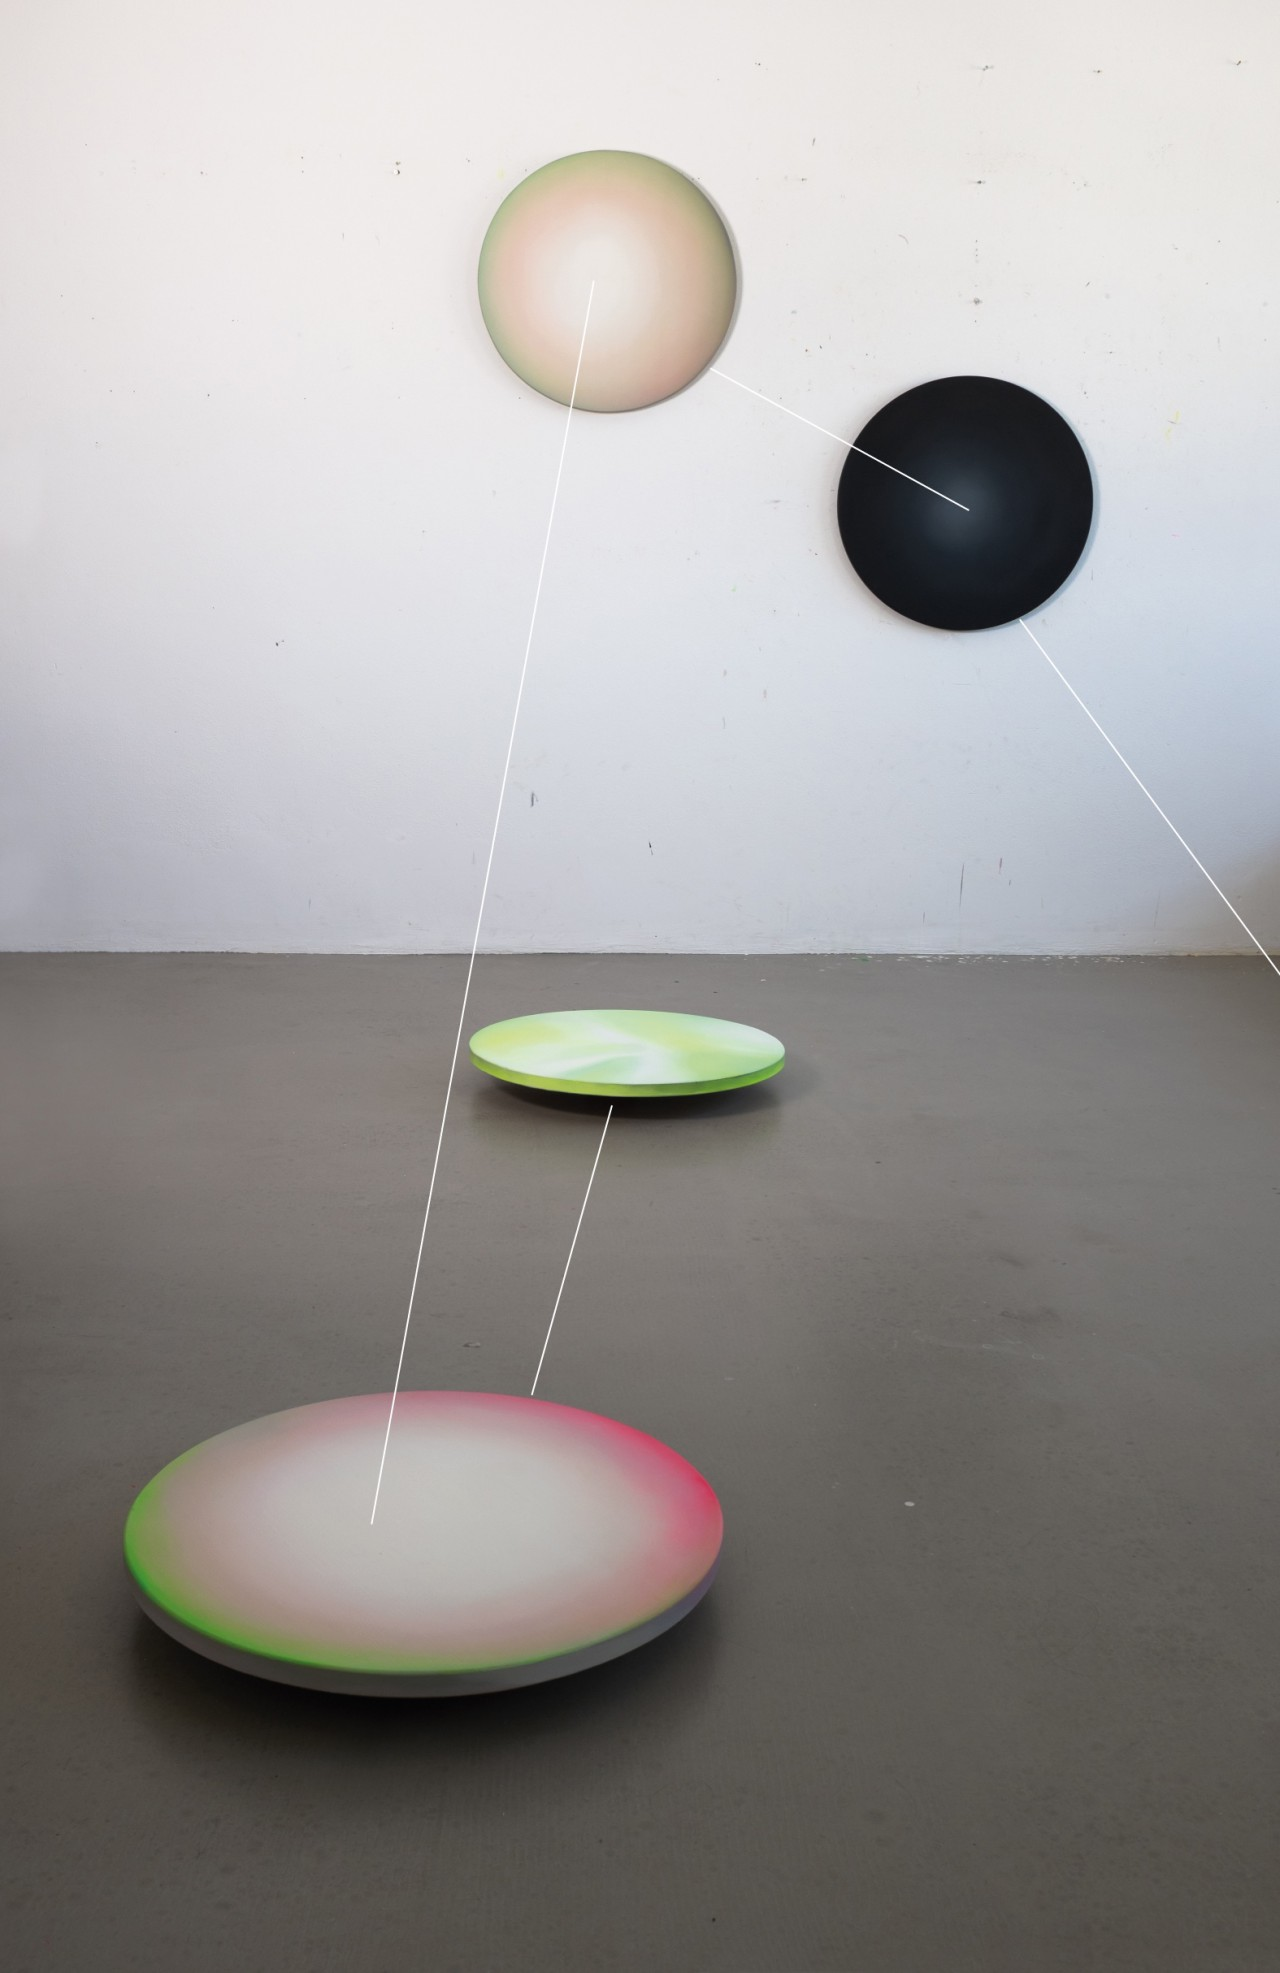 ENA OPPENHEIMER parallels intersect in infinity